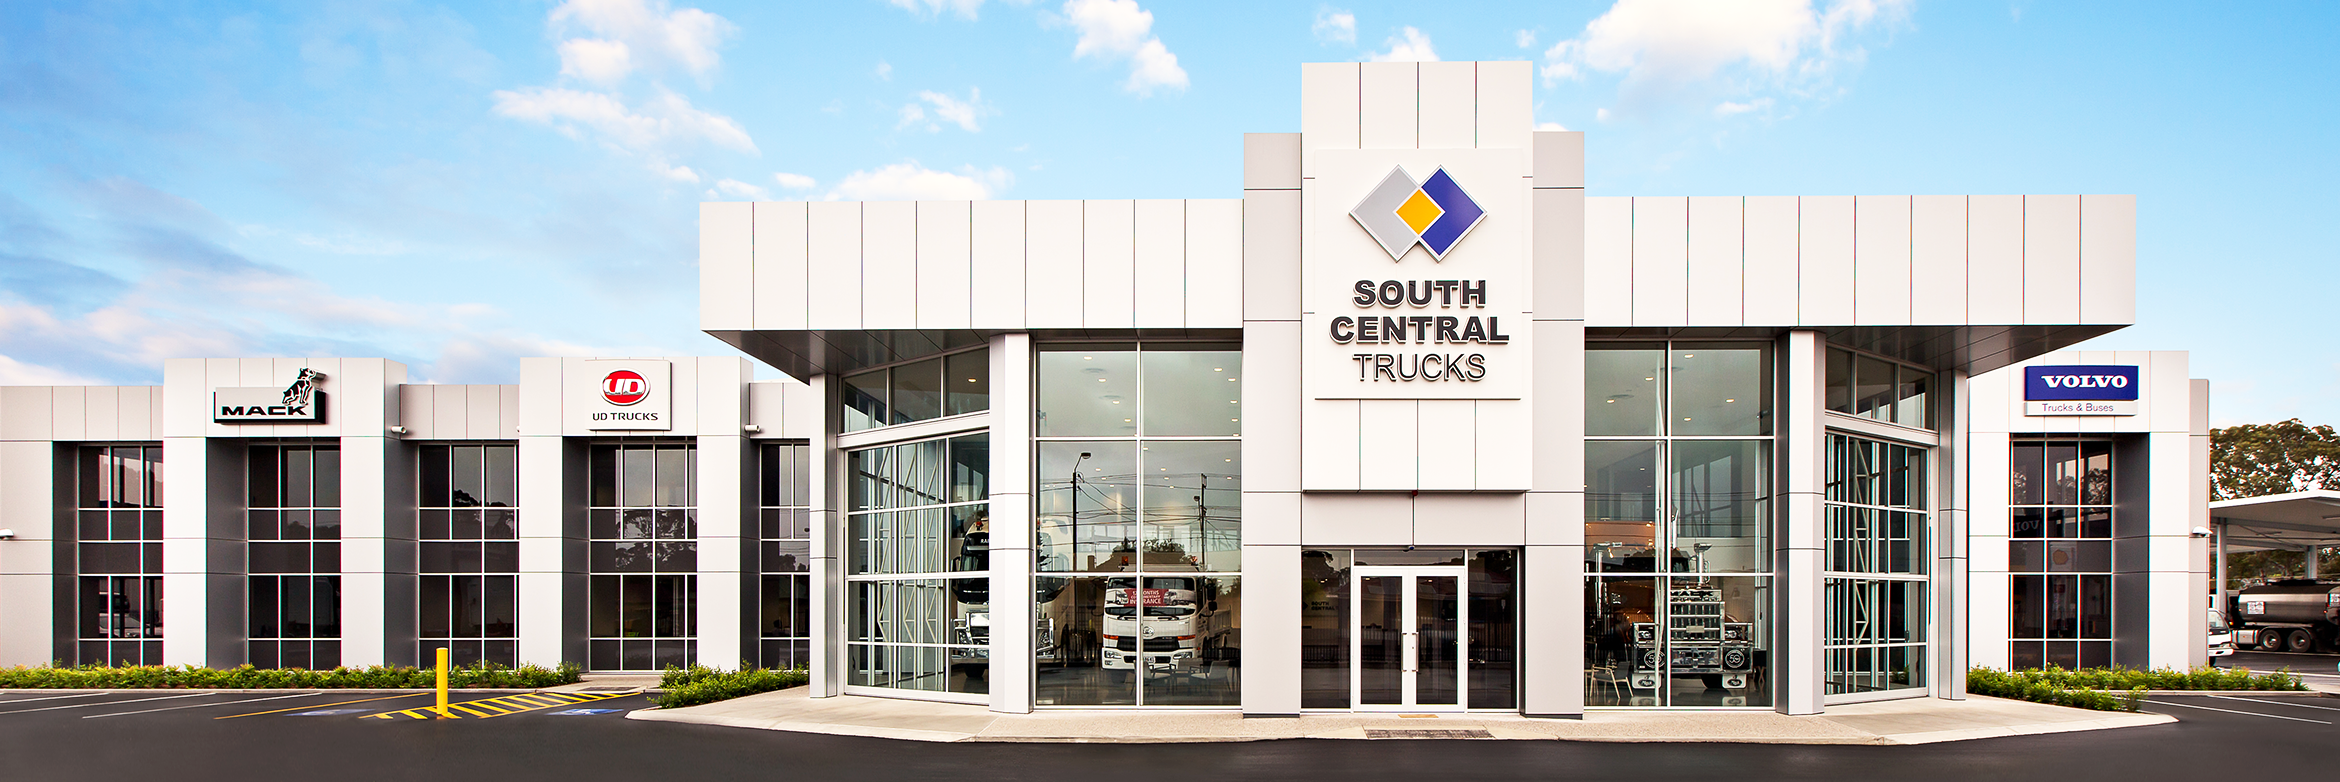 South Central Trucks - CMV Group